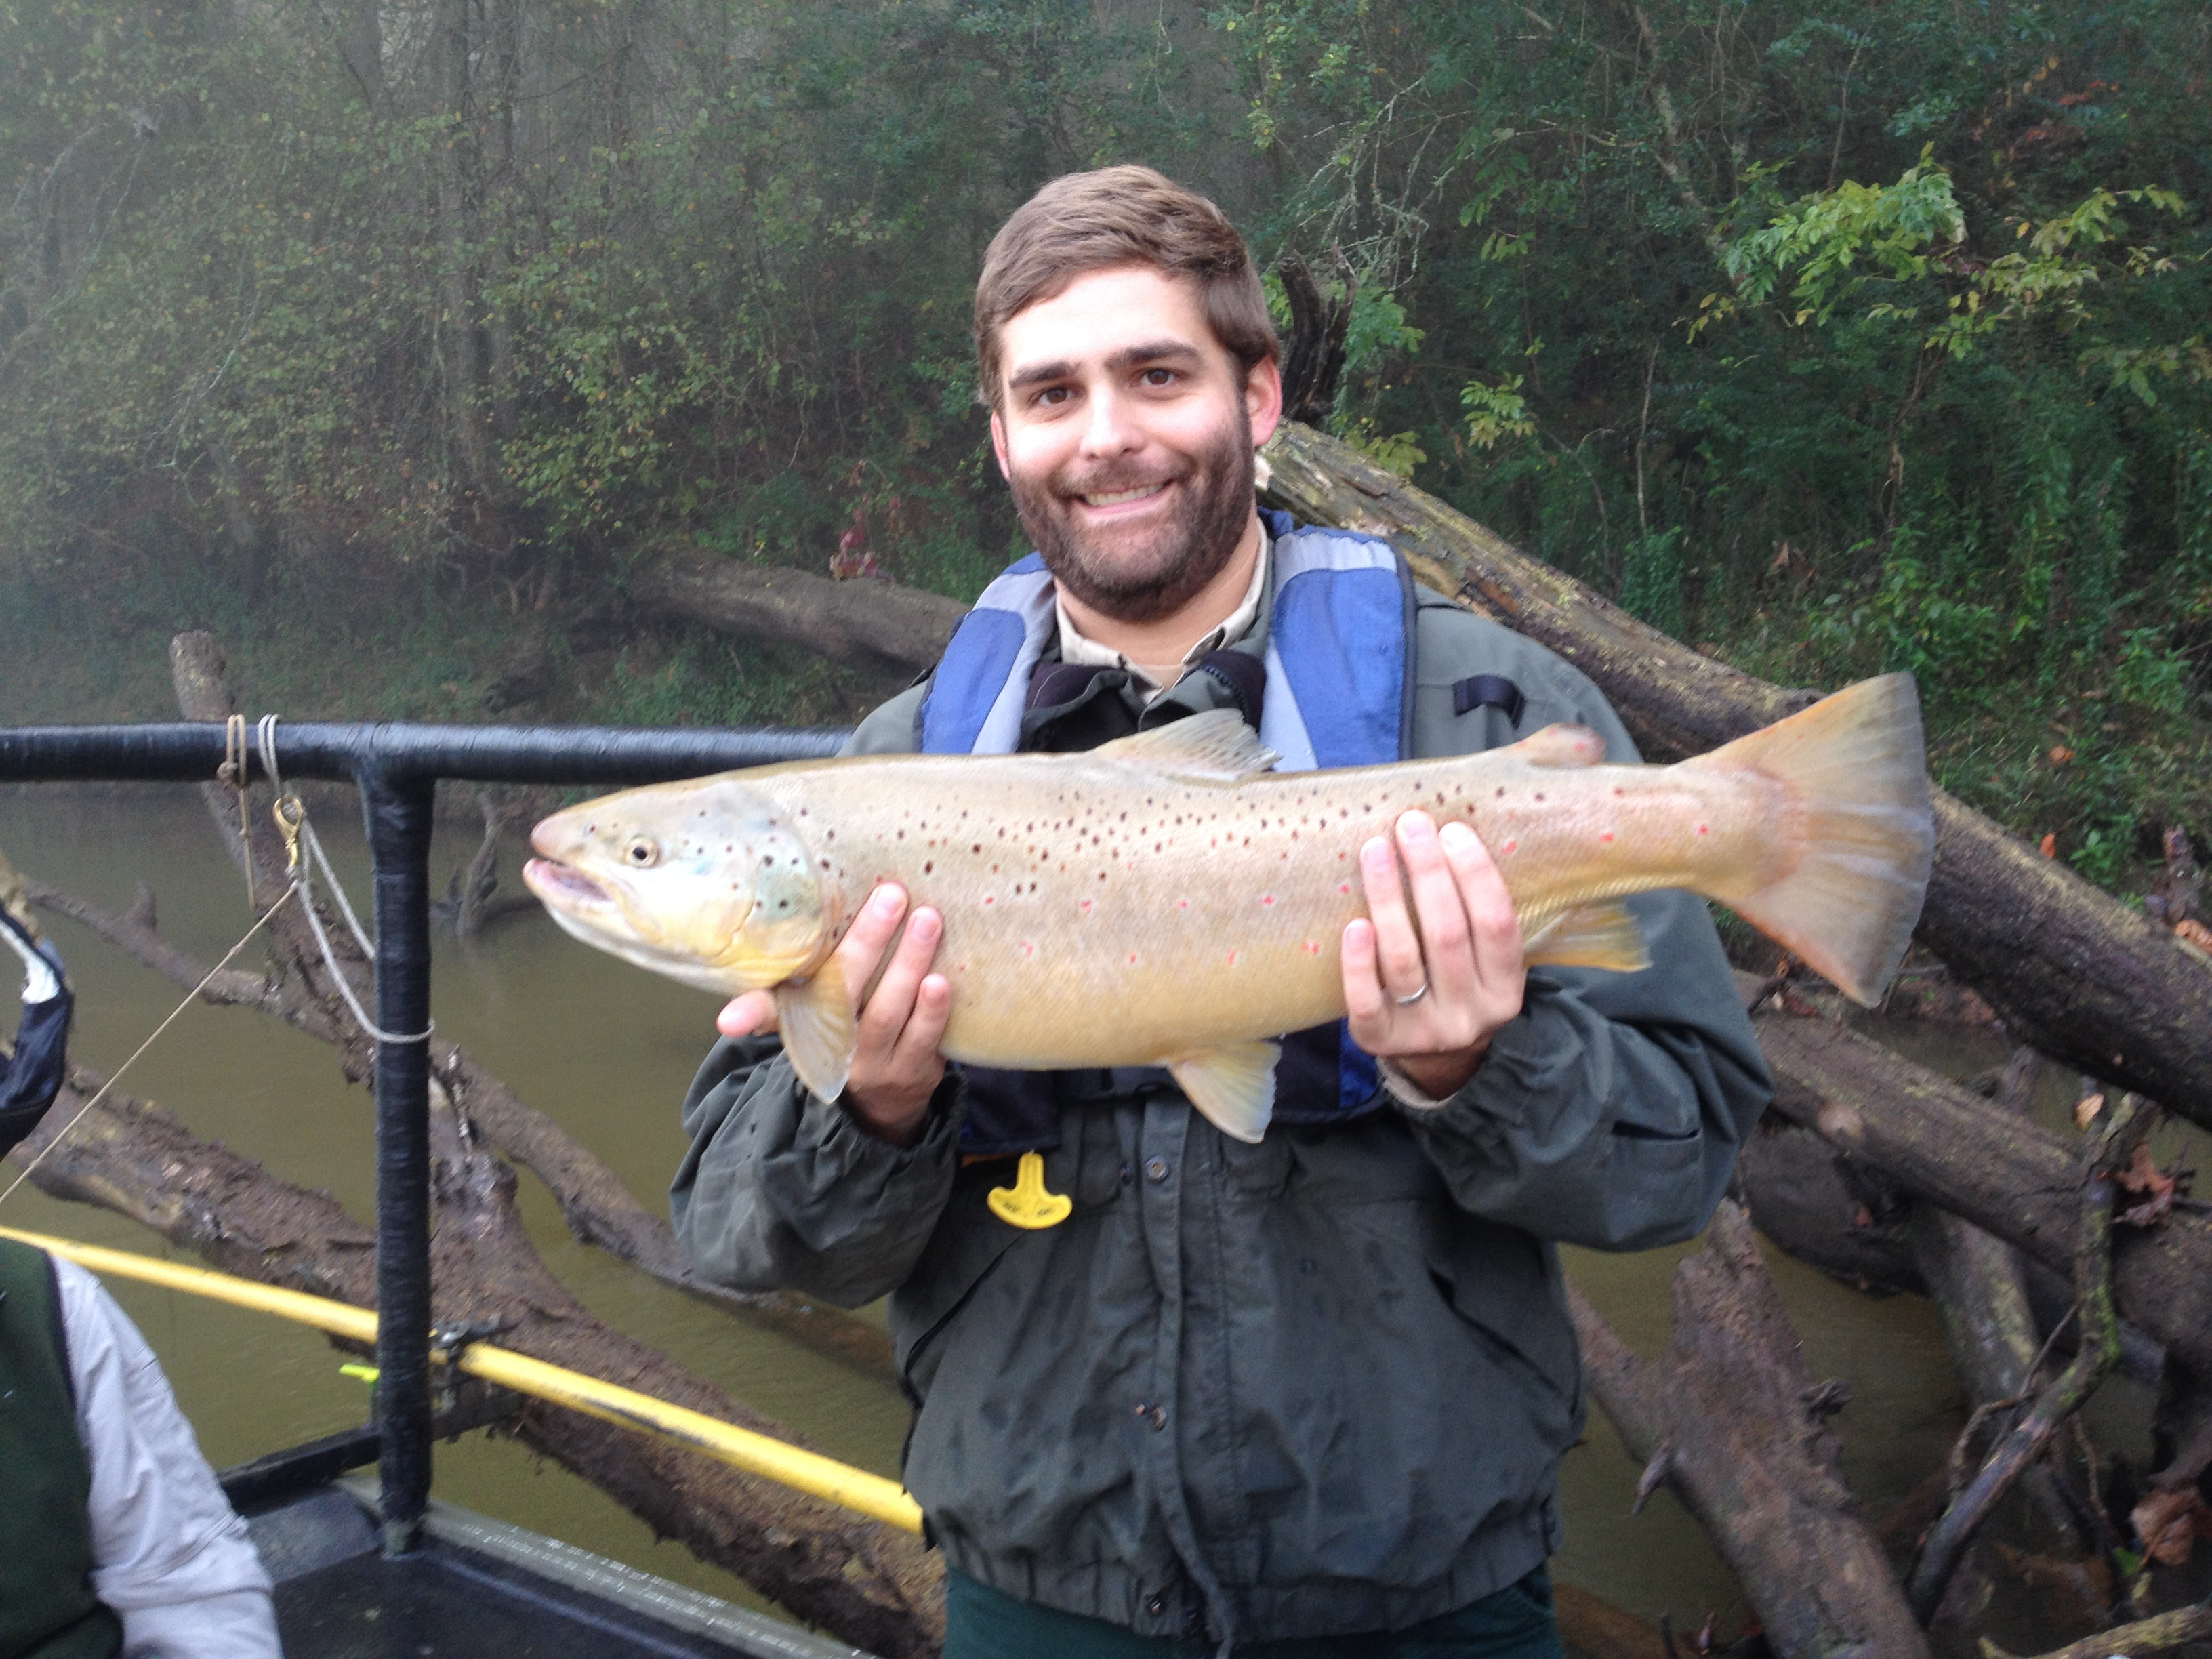 North georgia fishing report oct 24 2014 for Trout fishing in ga